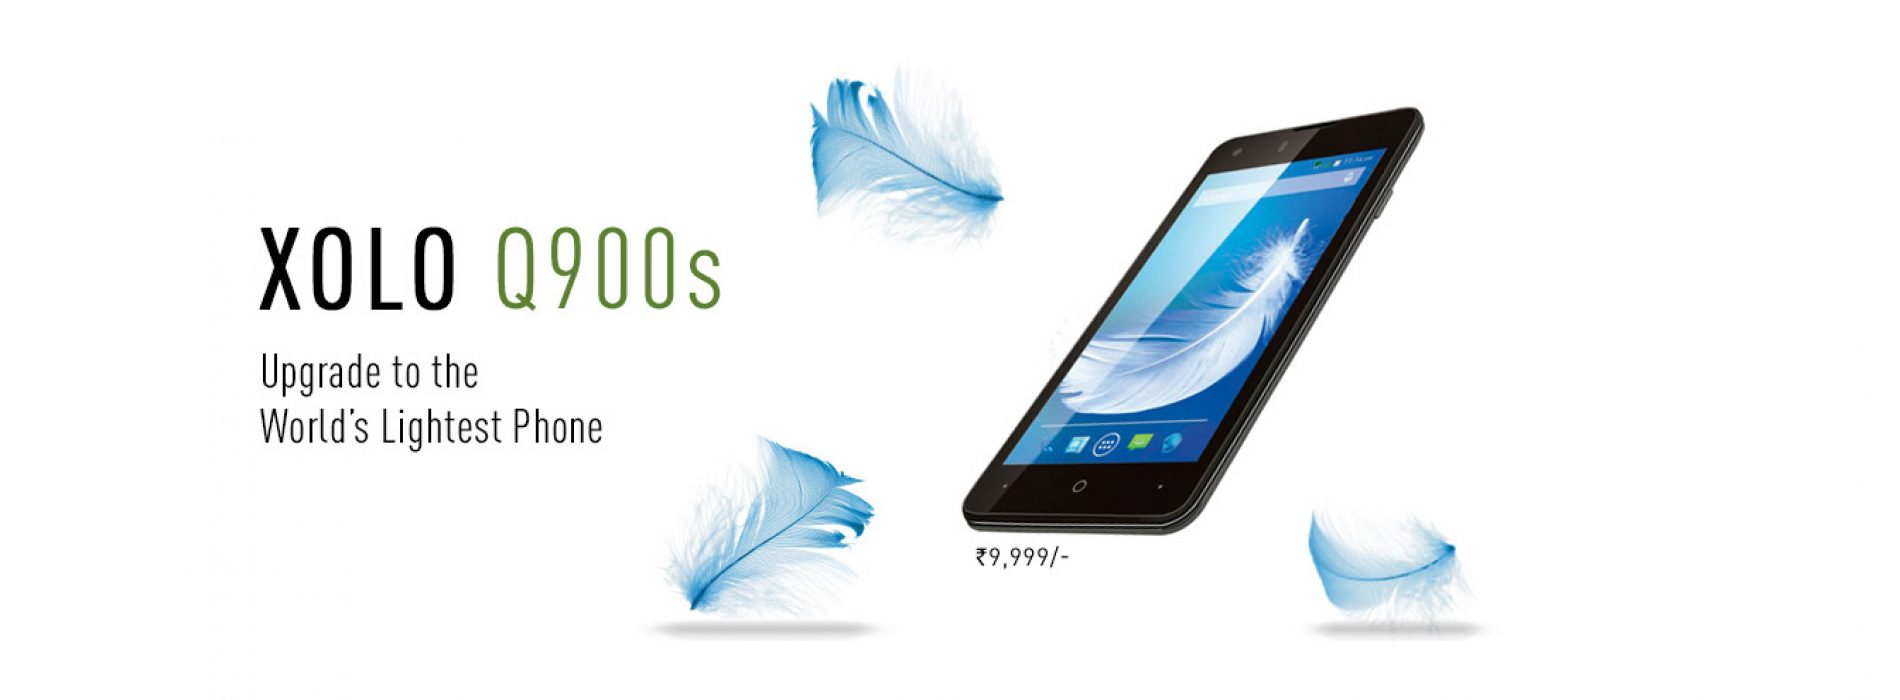 Xolo Q900s Android: Same hardware spec as WIN Q900s but an Android version at Rs 9,999